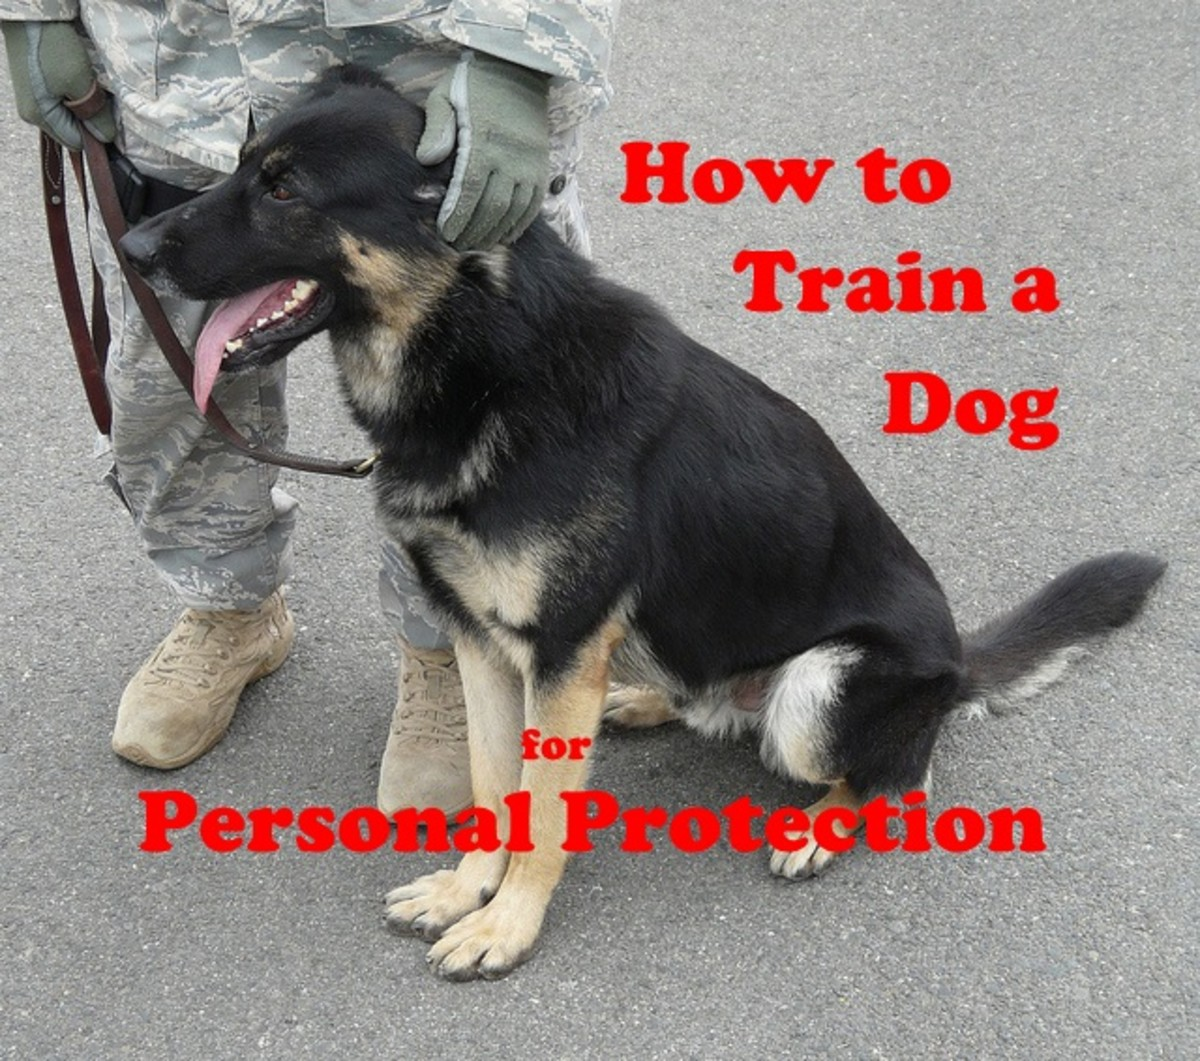 How to train your dog for personal protection.